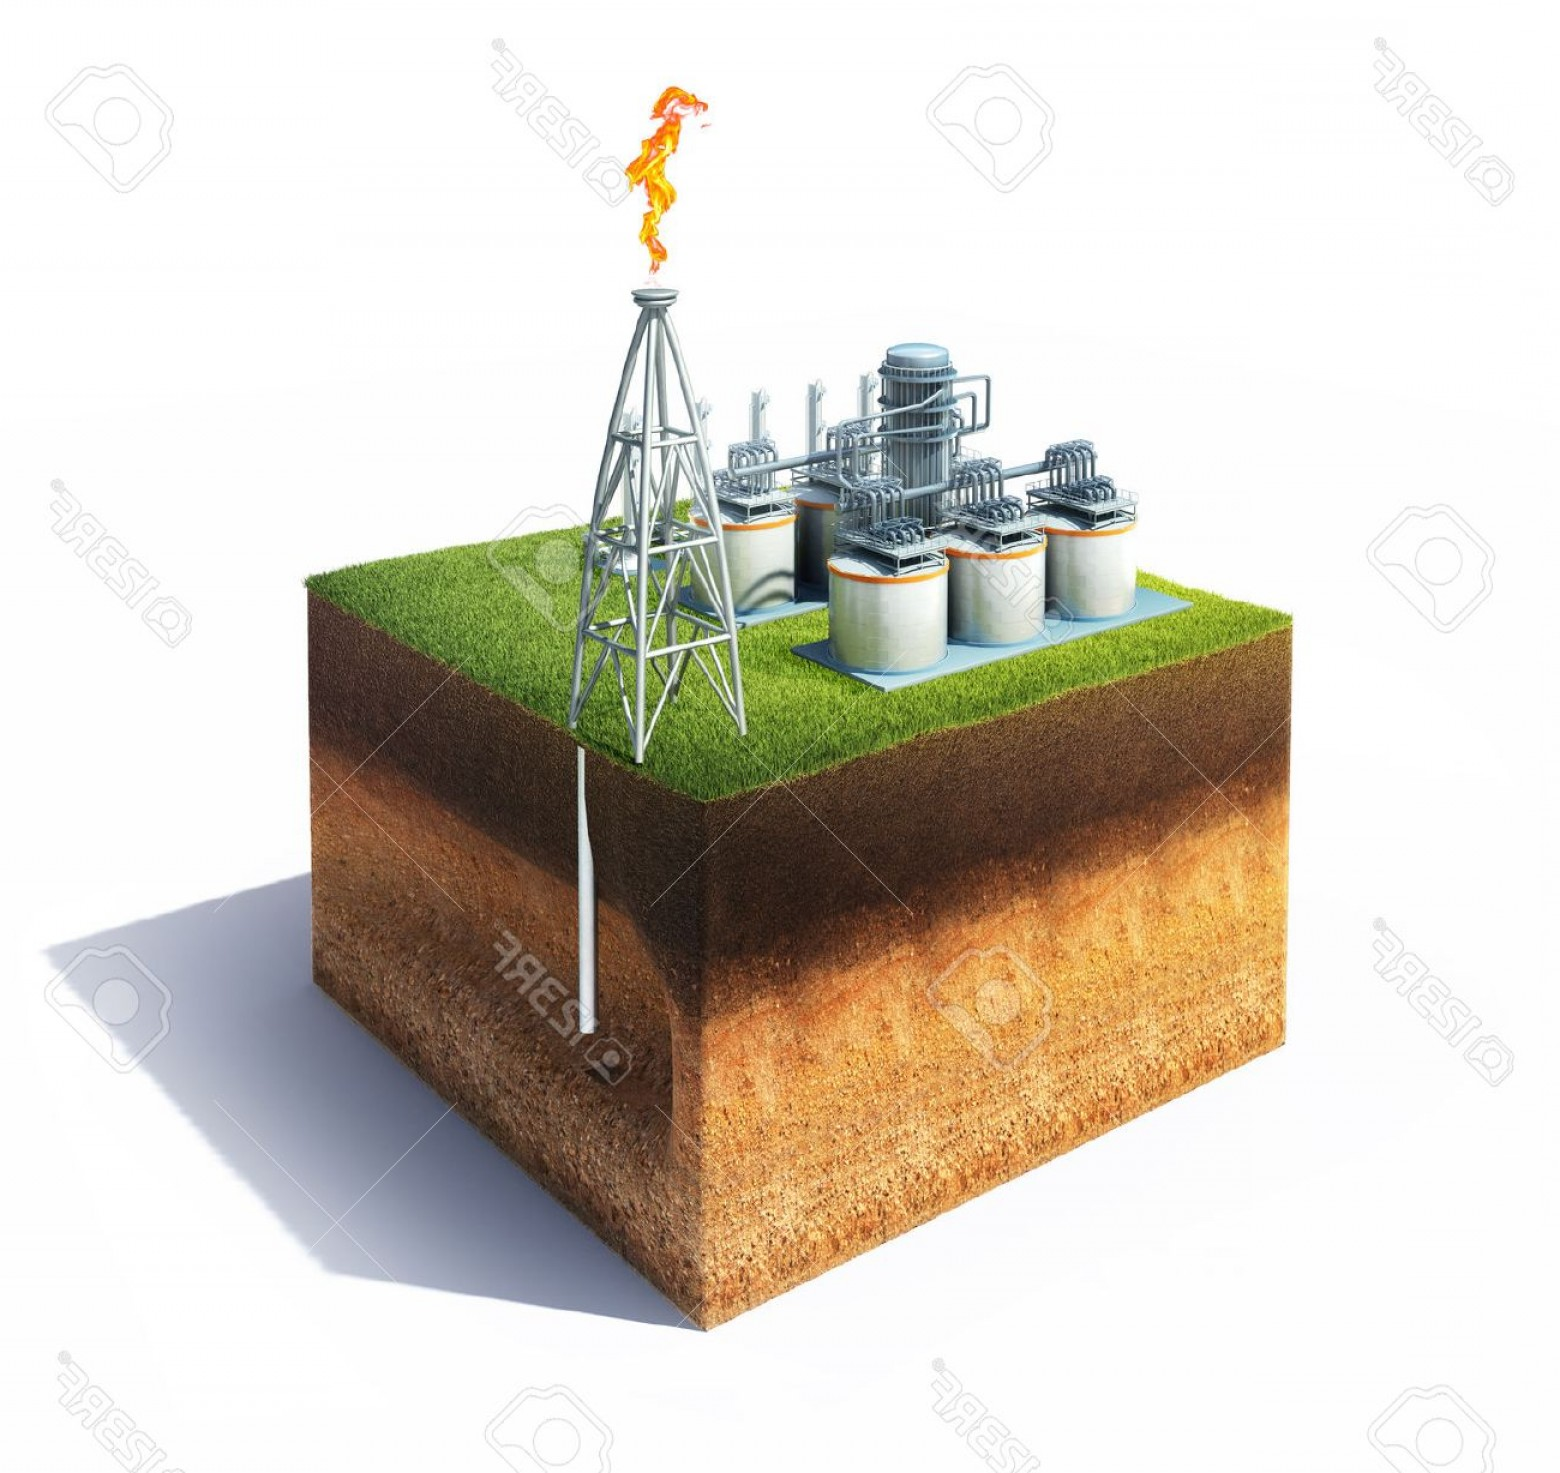 Oilfield Vector Crosses: Photod Model Of Cross Section Of Ground With Grass And Oil Or Gas Refinery With Smokestack Emitting A Bu